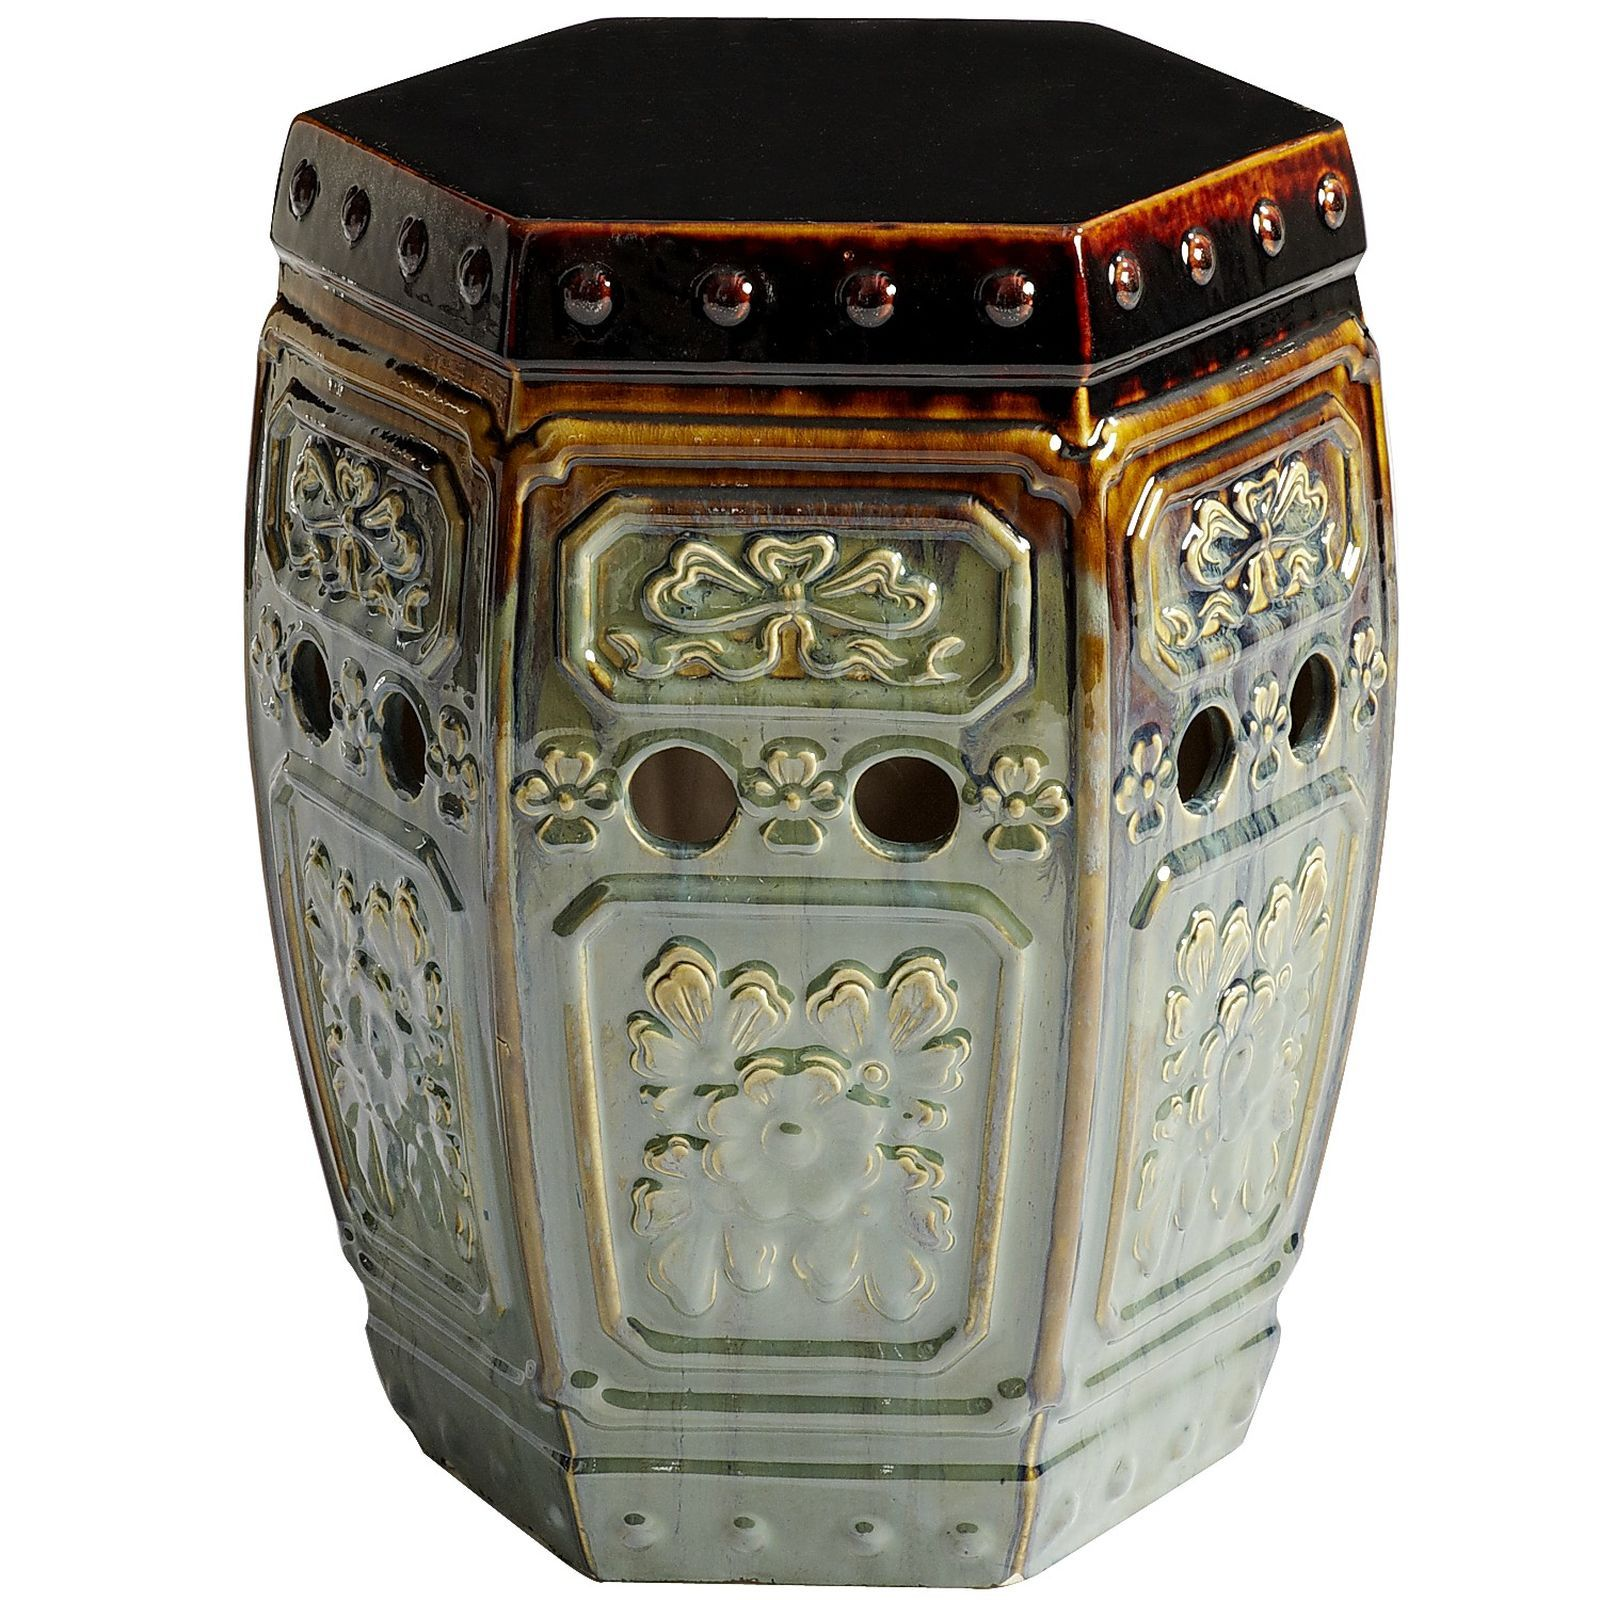 Pleasant Embossed Garden Stool Deck Ceramic Garden Stools Garden Ocoug Best Dining Table And Chair Ideas Images Ocougorg